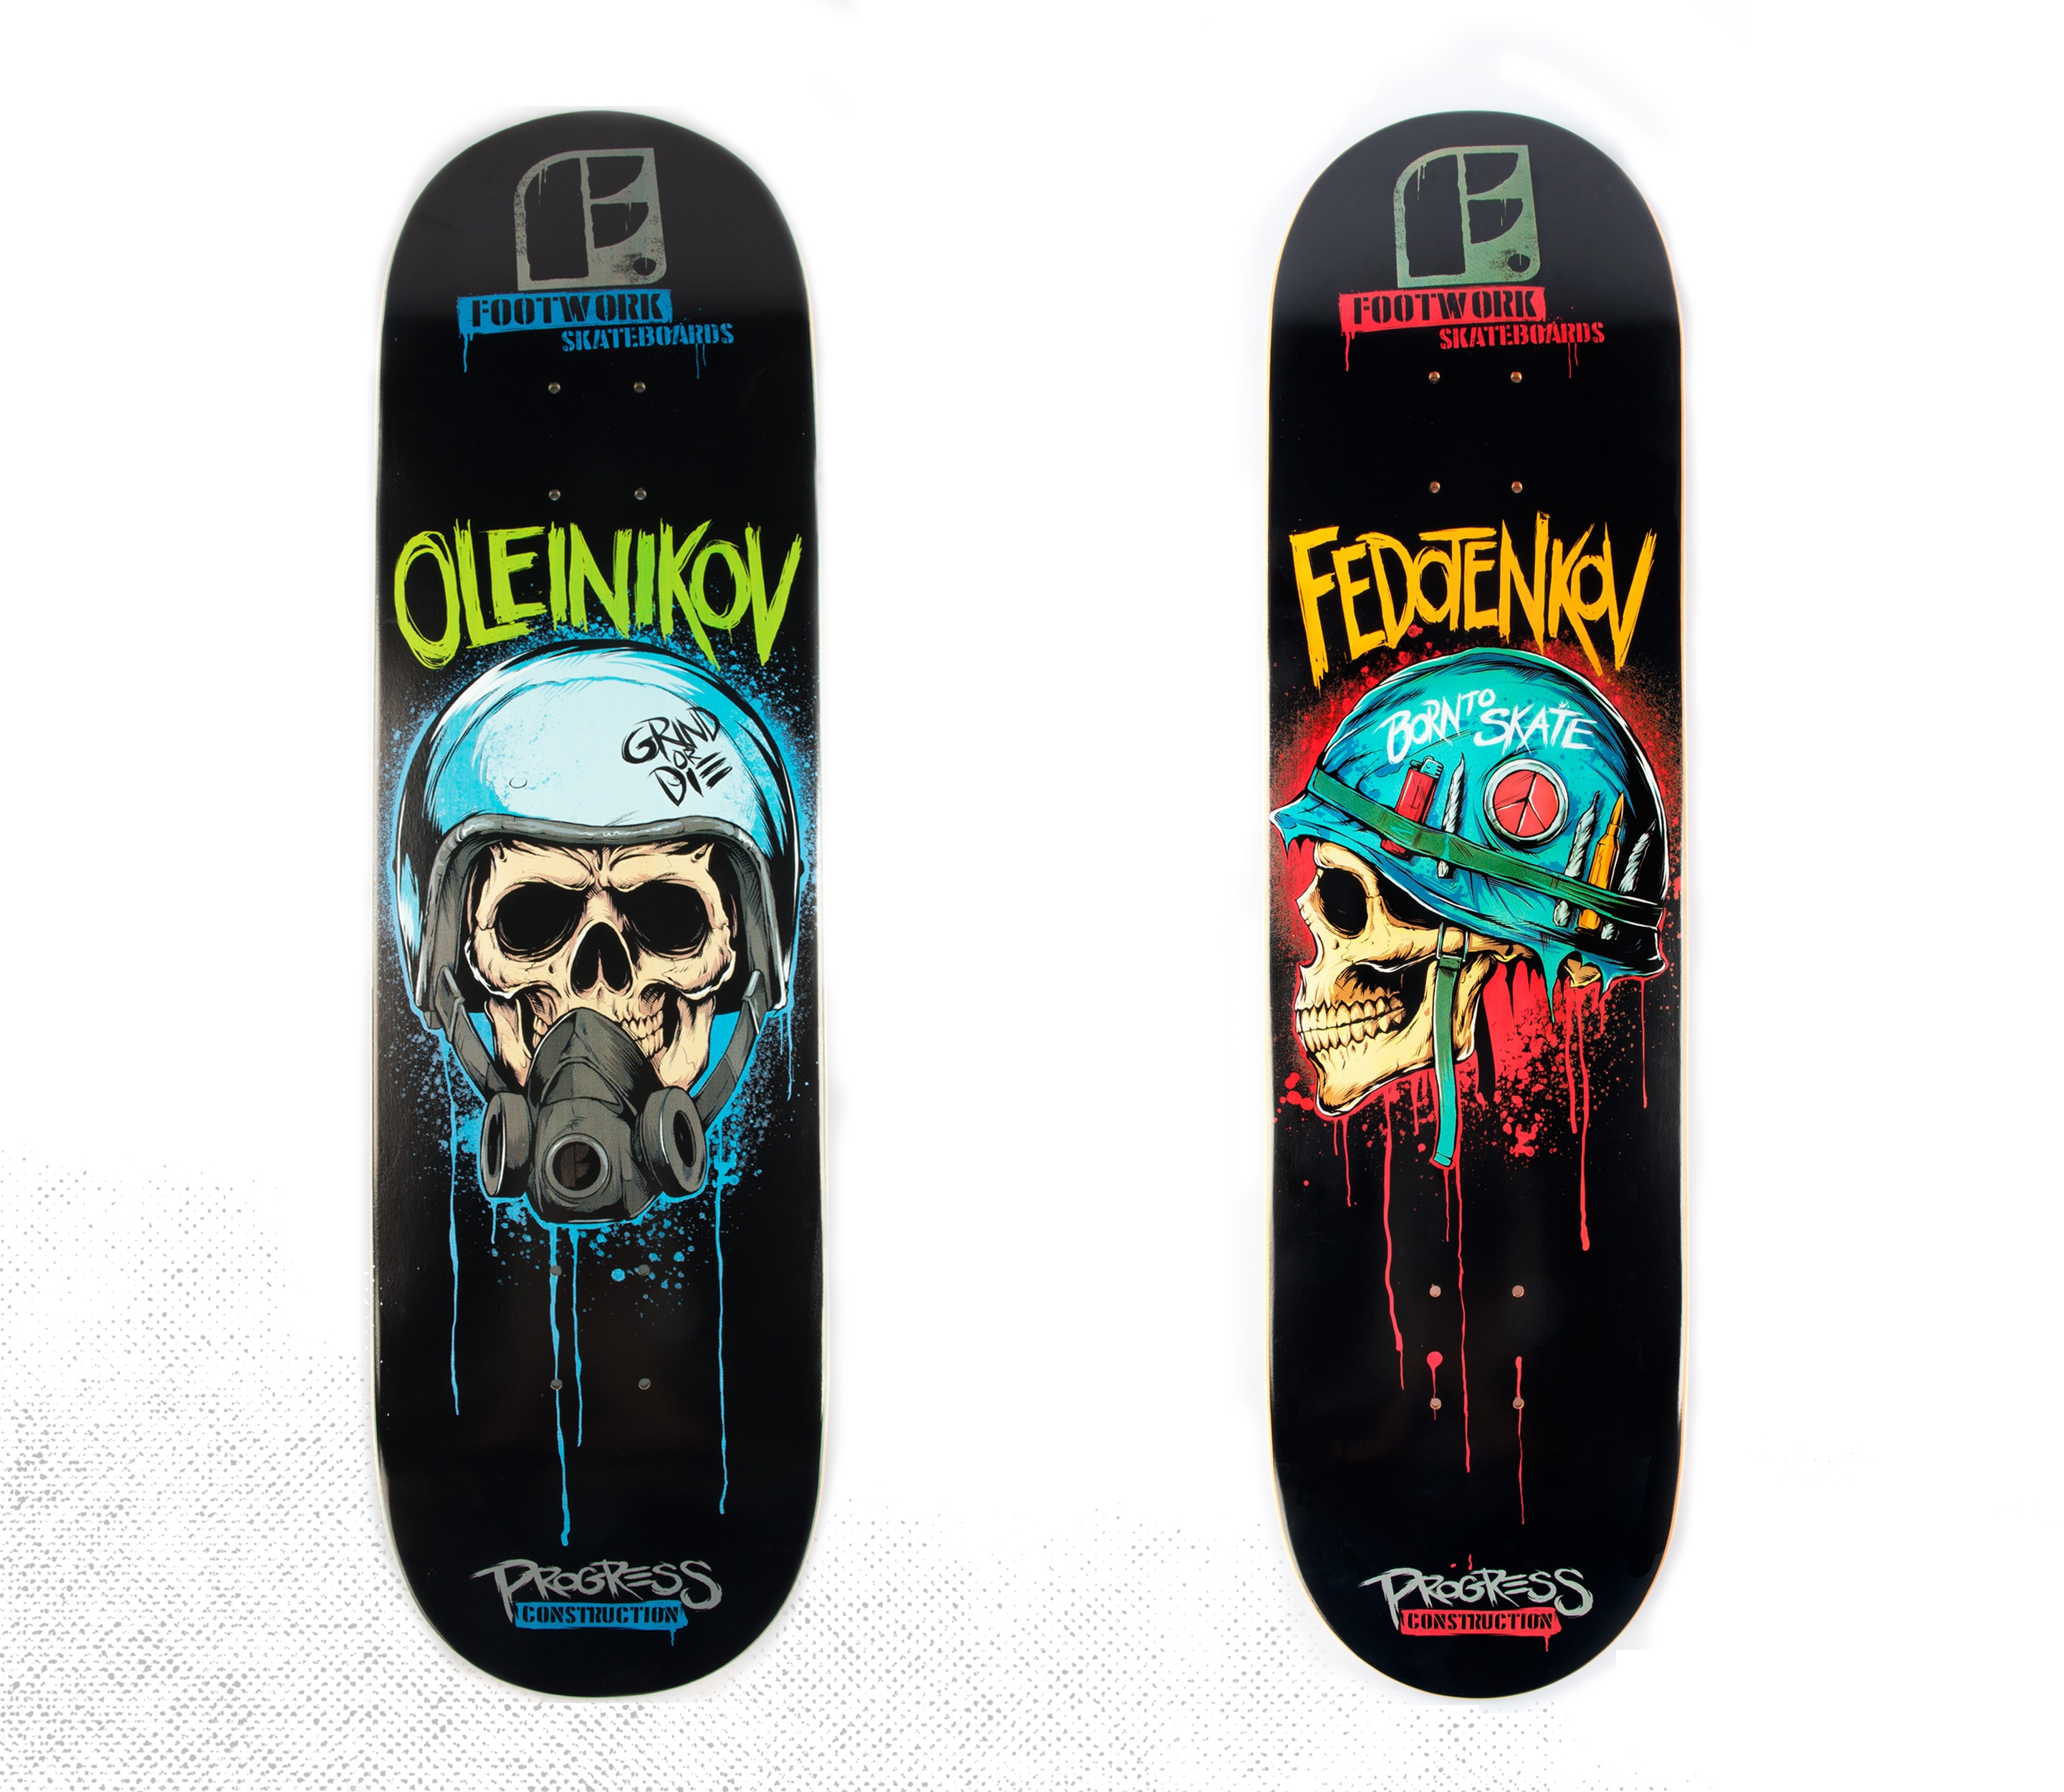 Movie billboards turned to skateboard designs